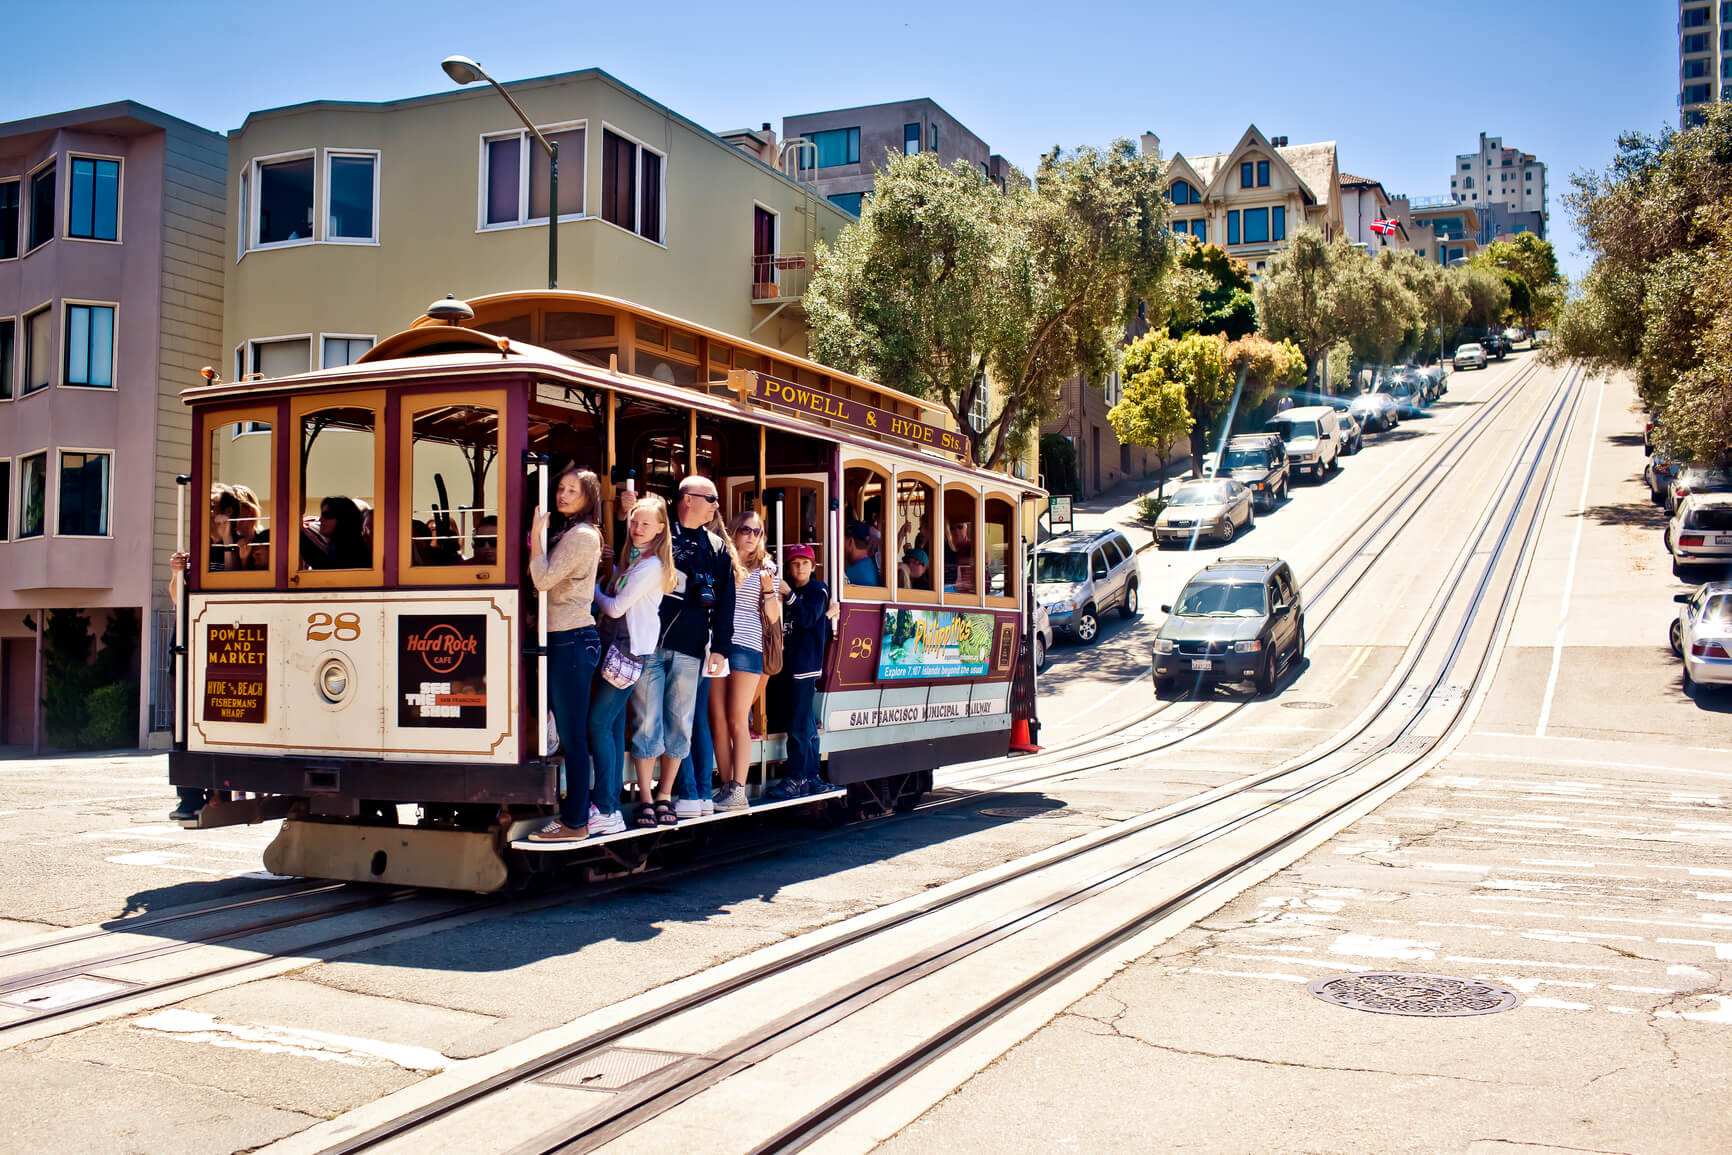 HOT!! Non-stop from Manchester, UK to San Francisco, USA for only £279 roundtrip